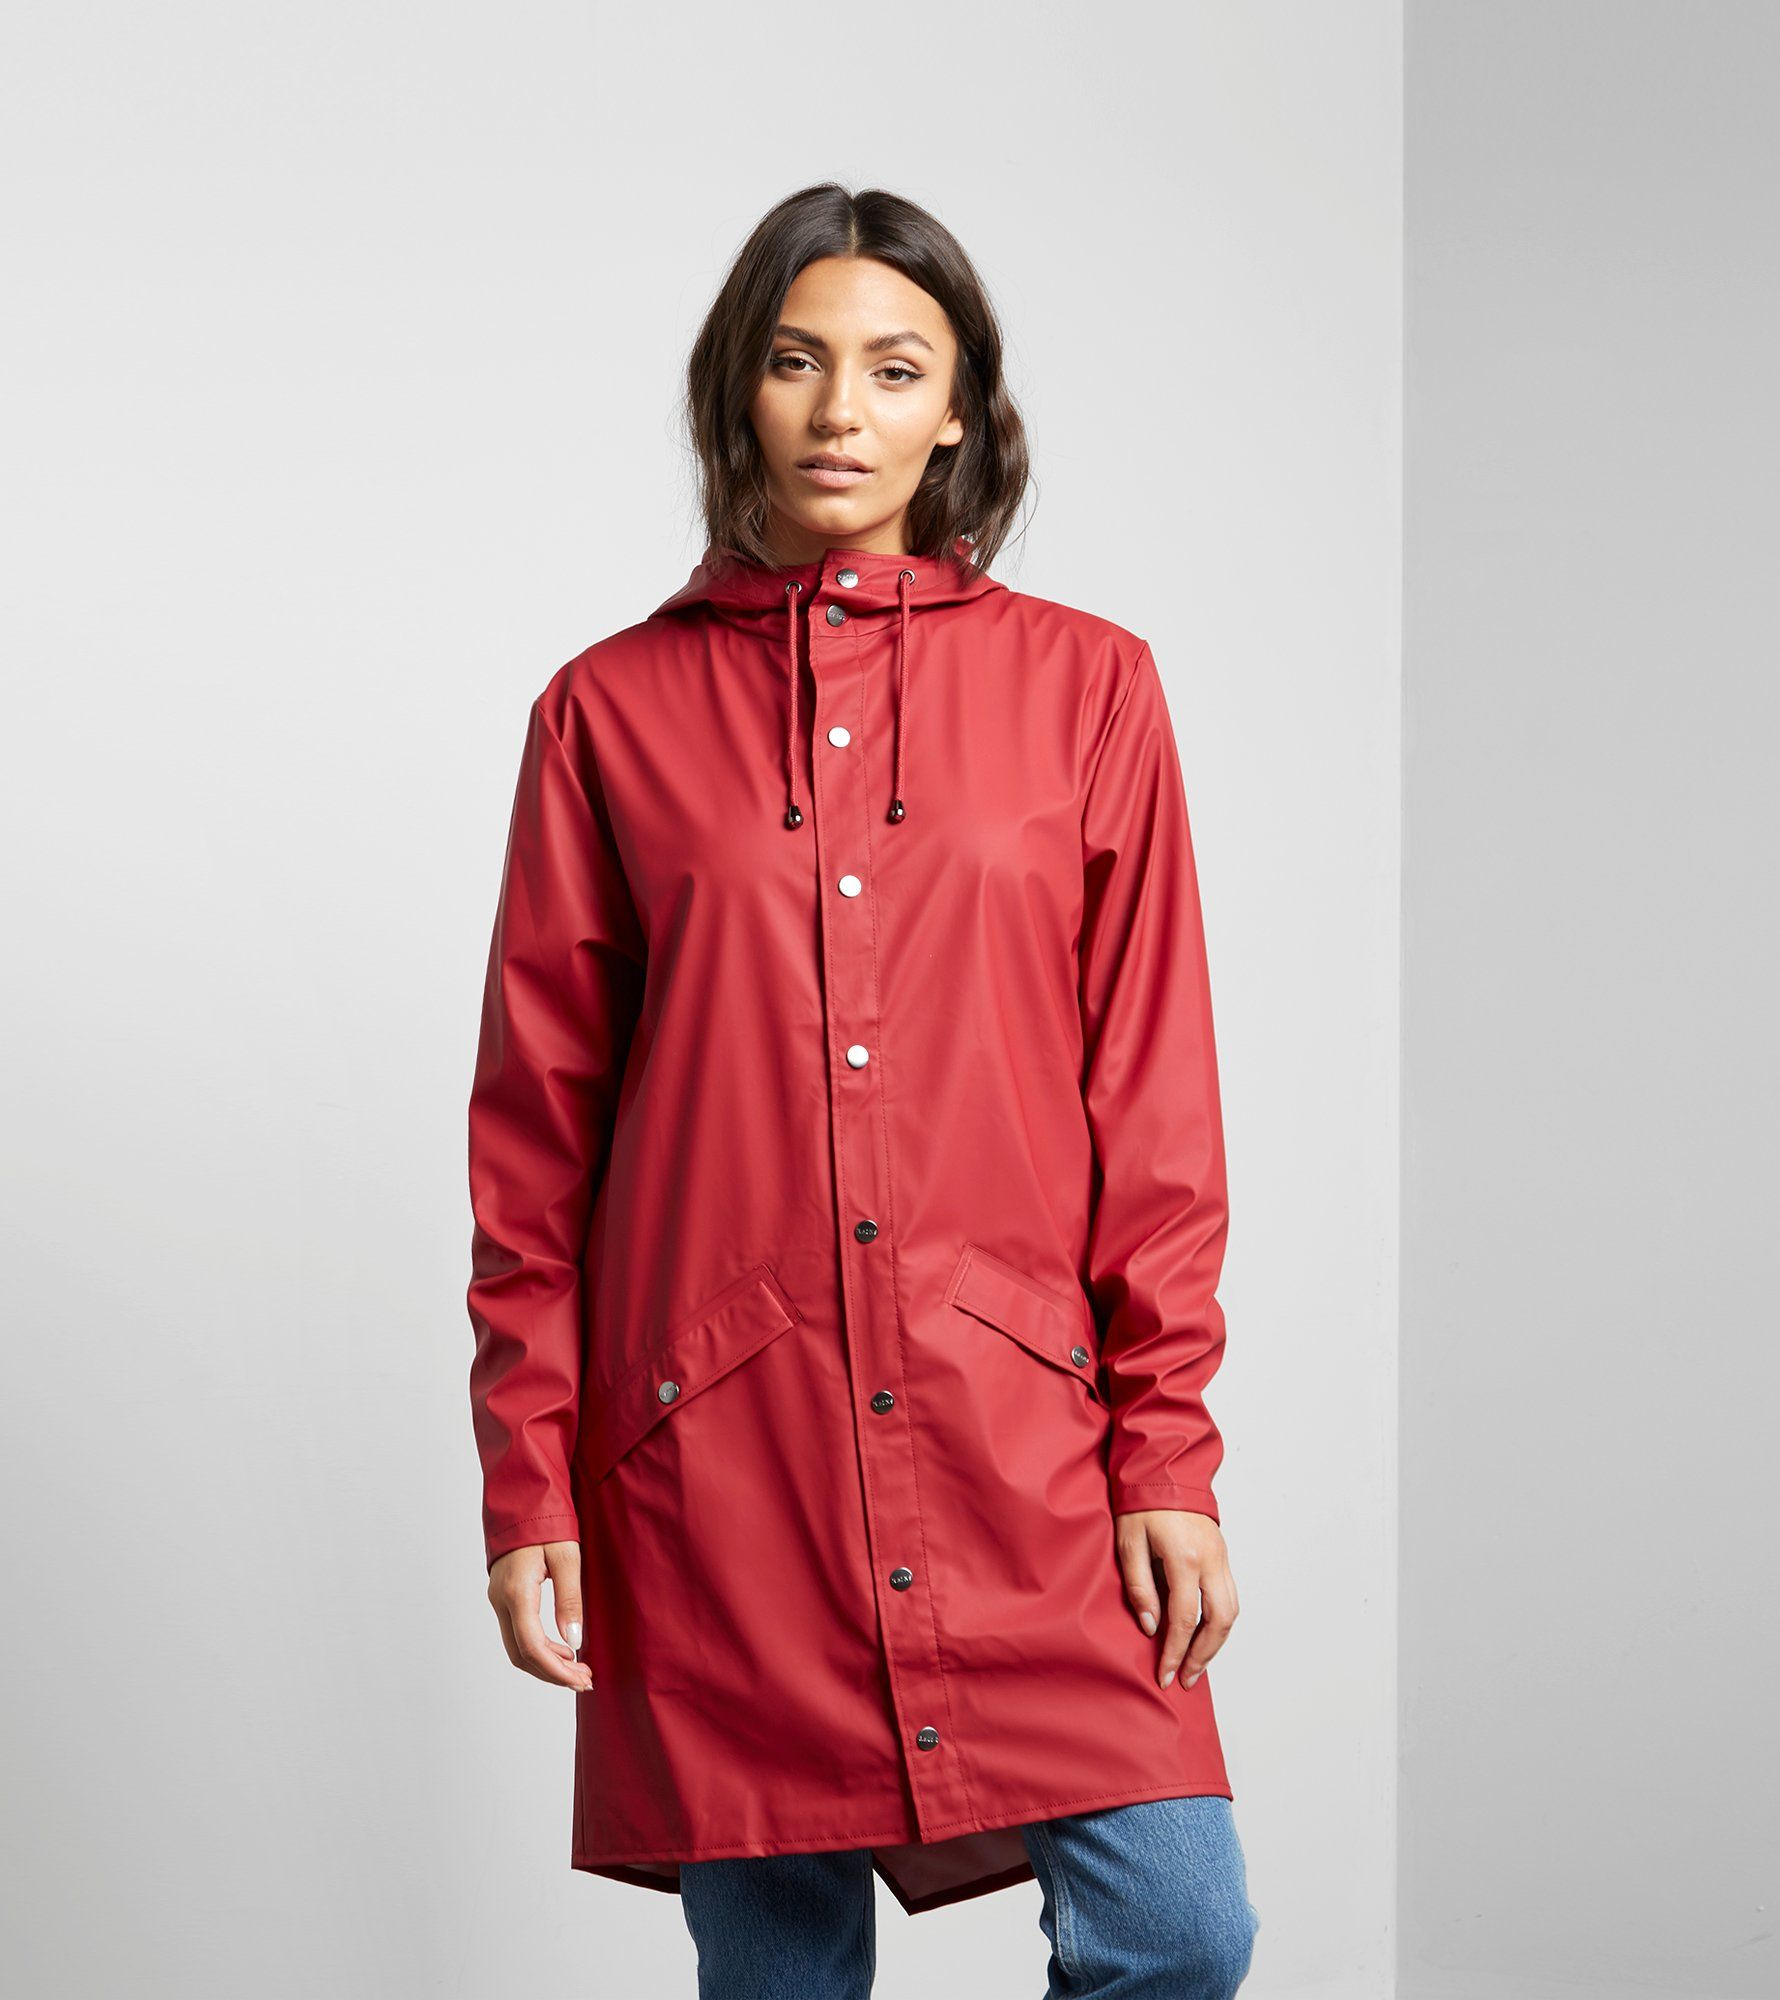 RAINS Long Jacket | Size?